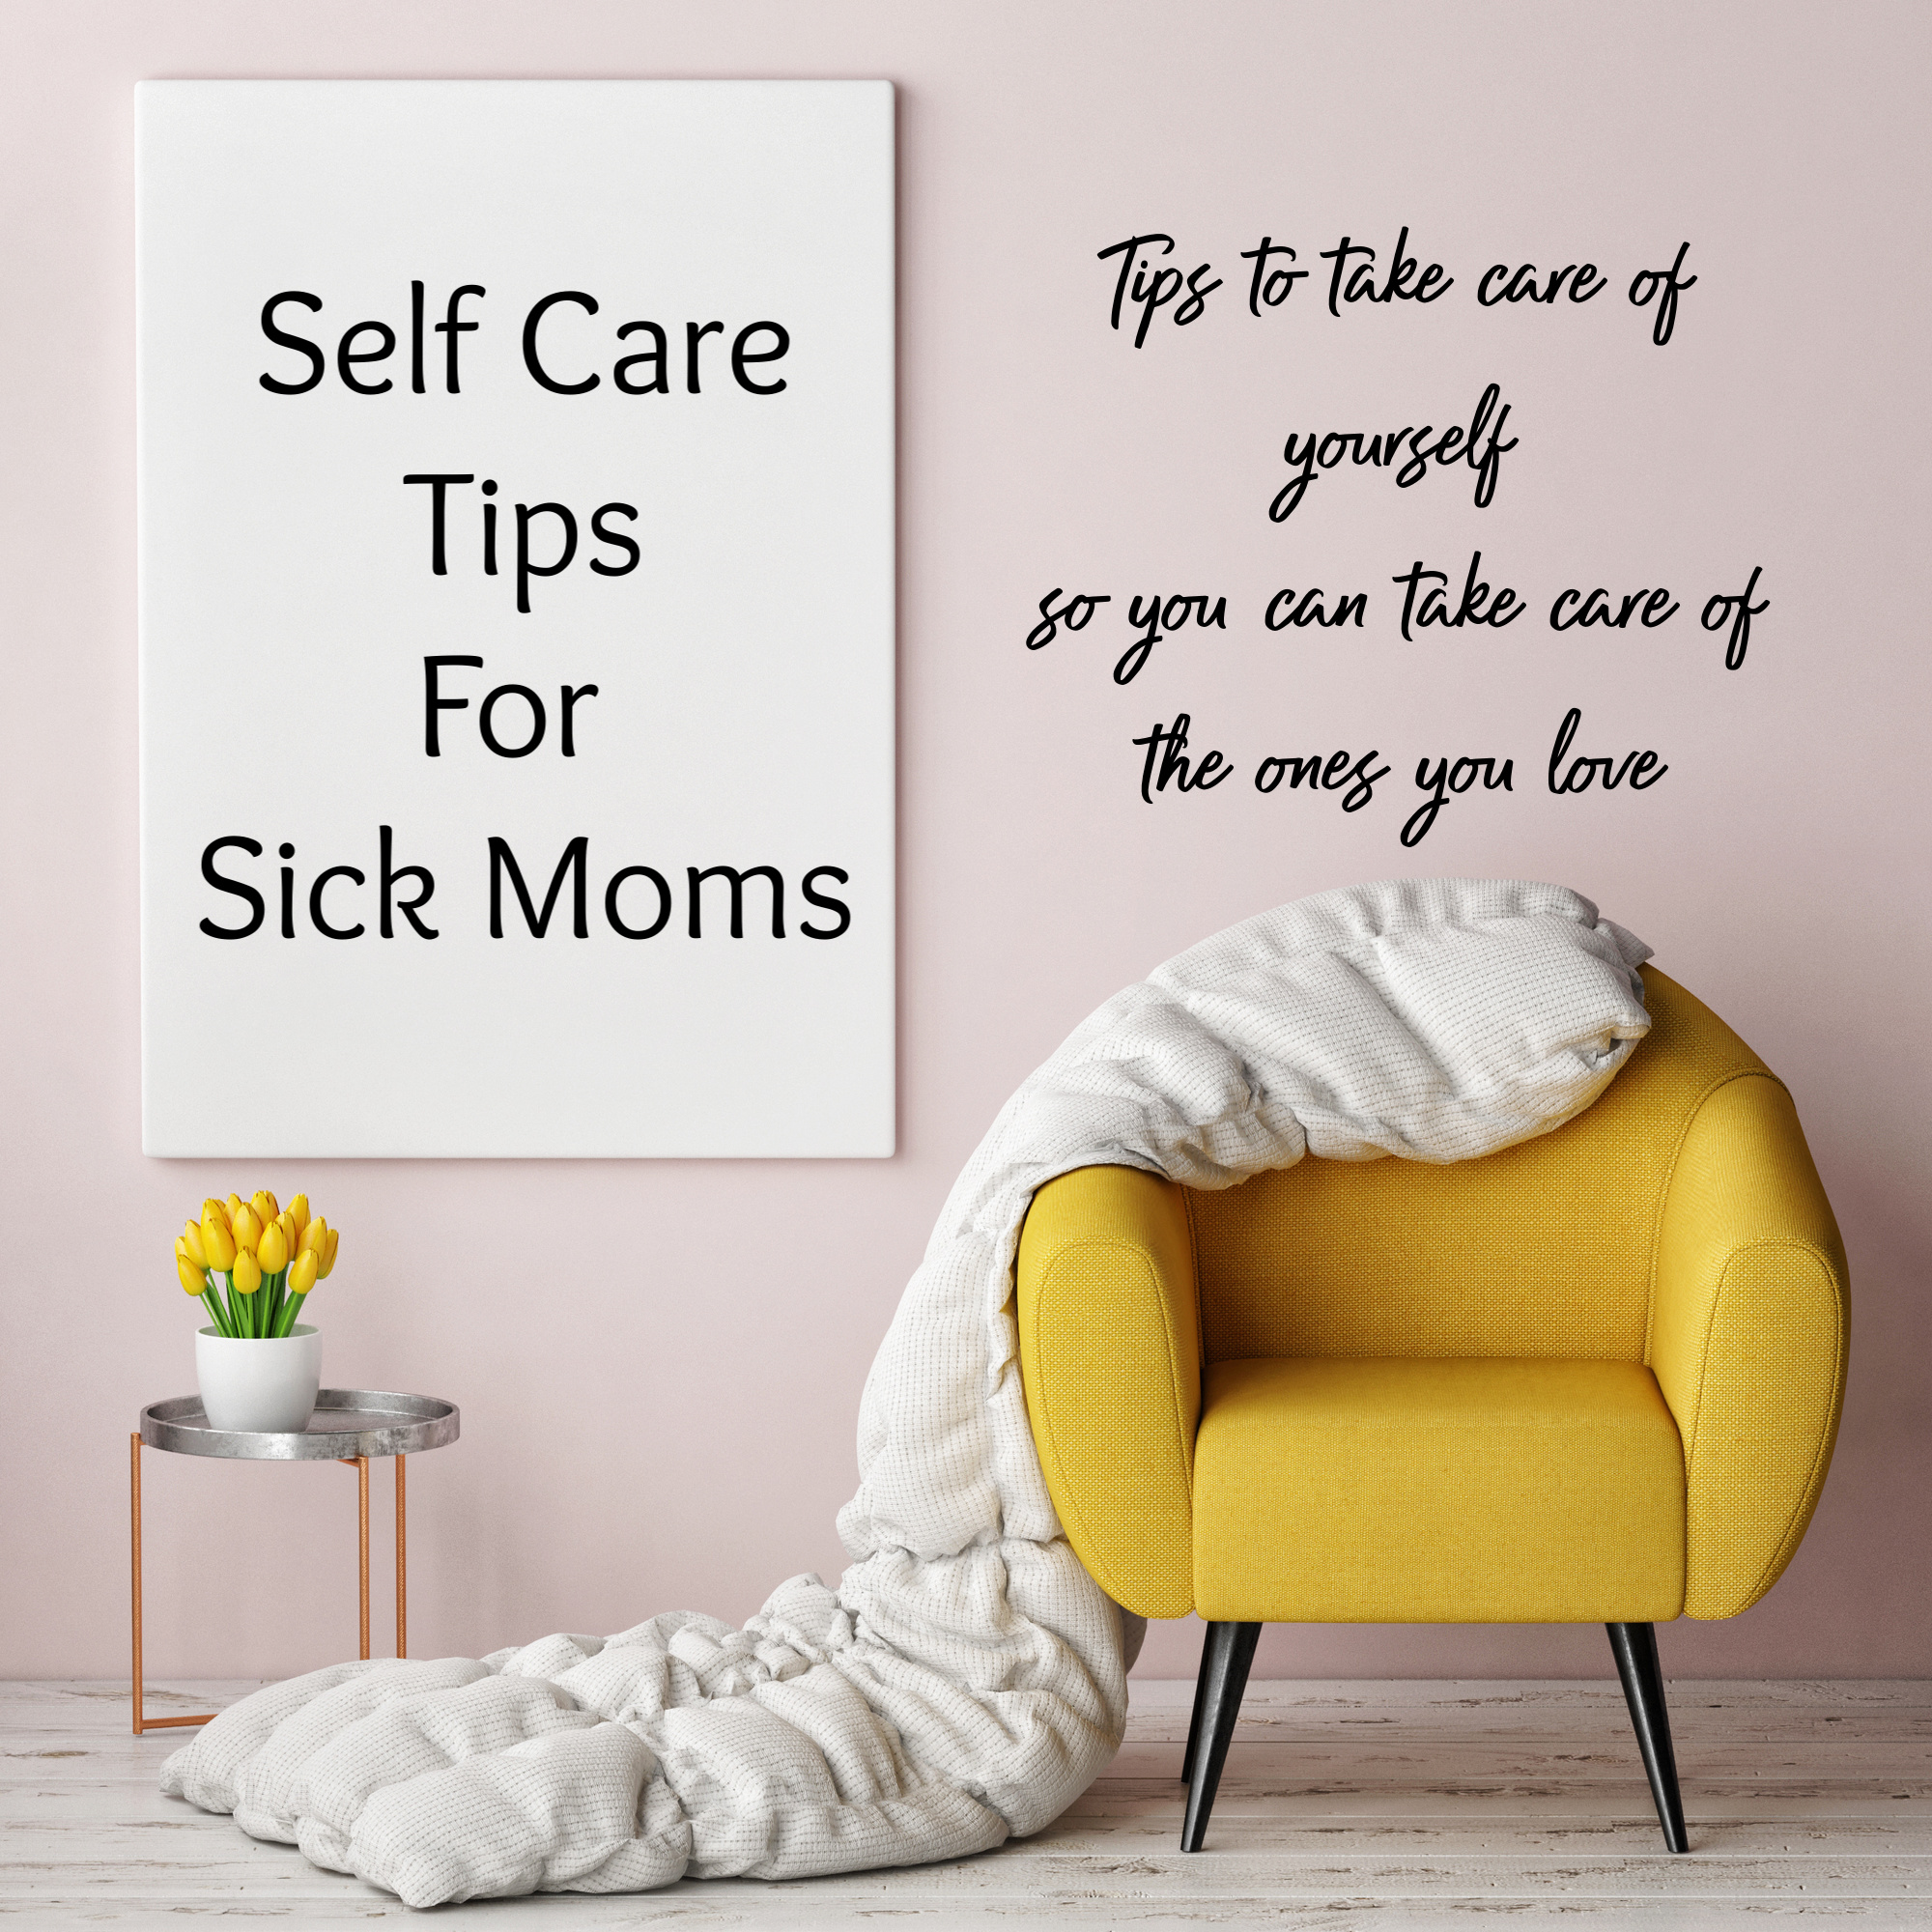 7 self care tips for sick moms